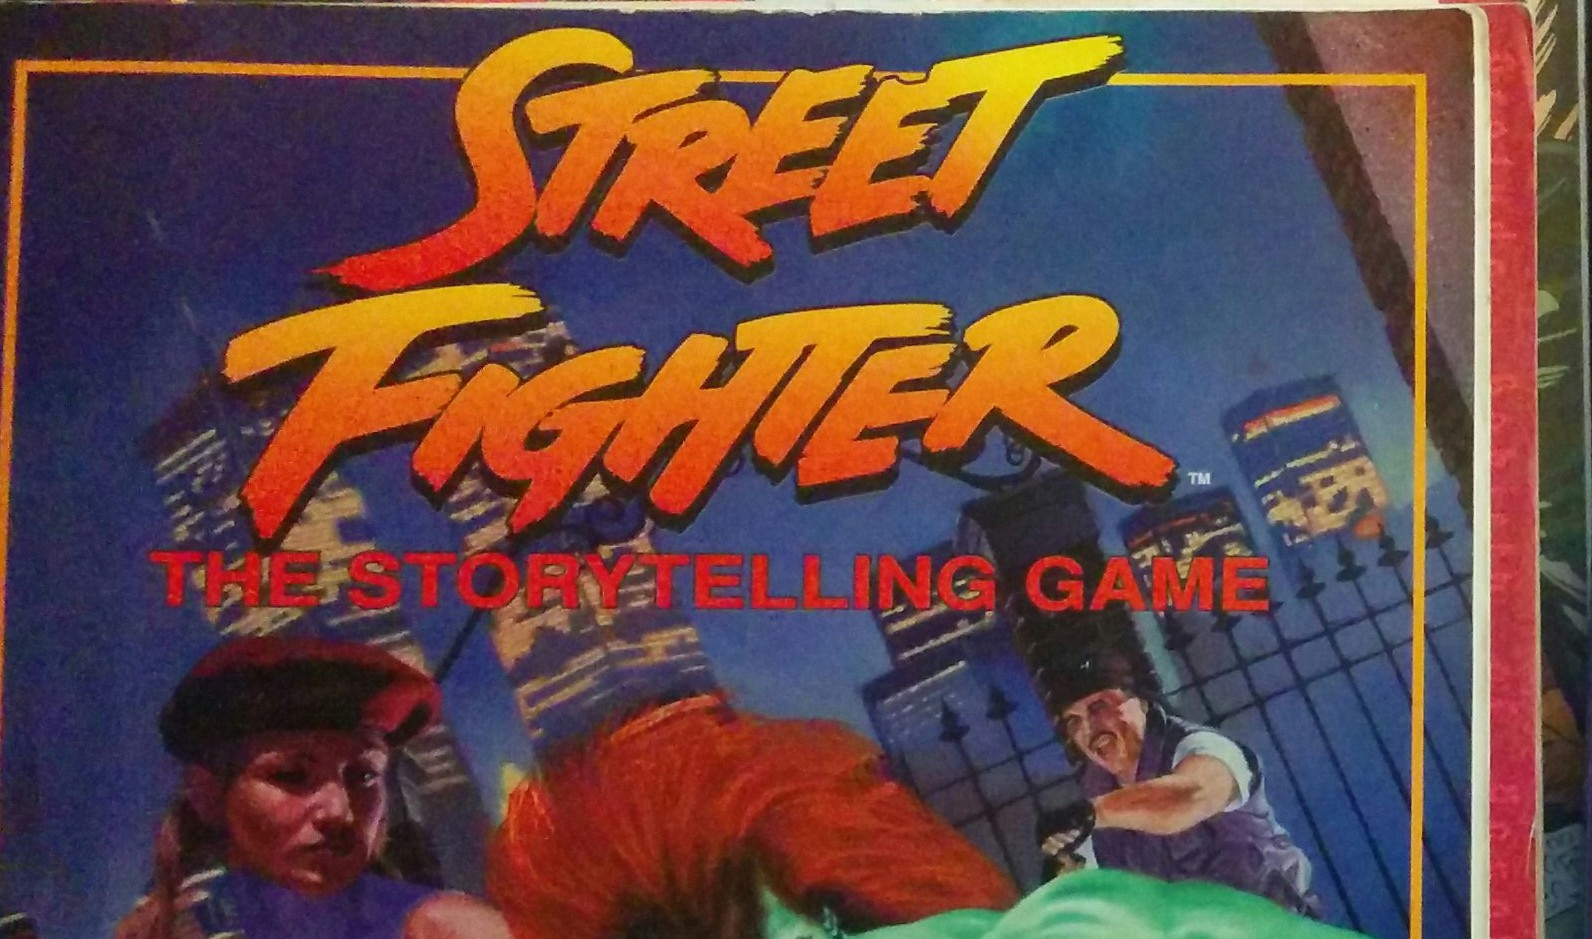 couverture du jeu Streetfighter de White Wolf